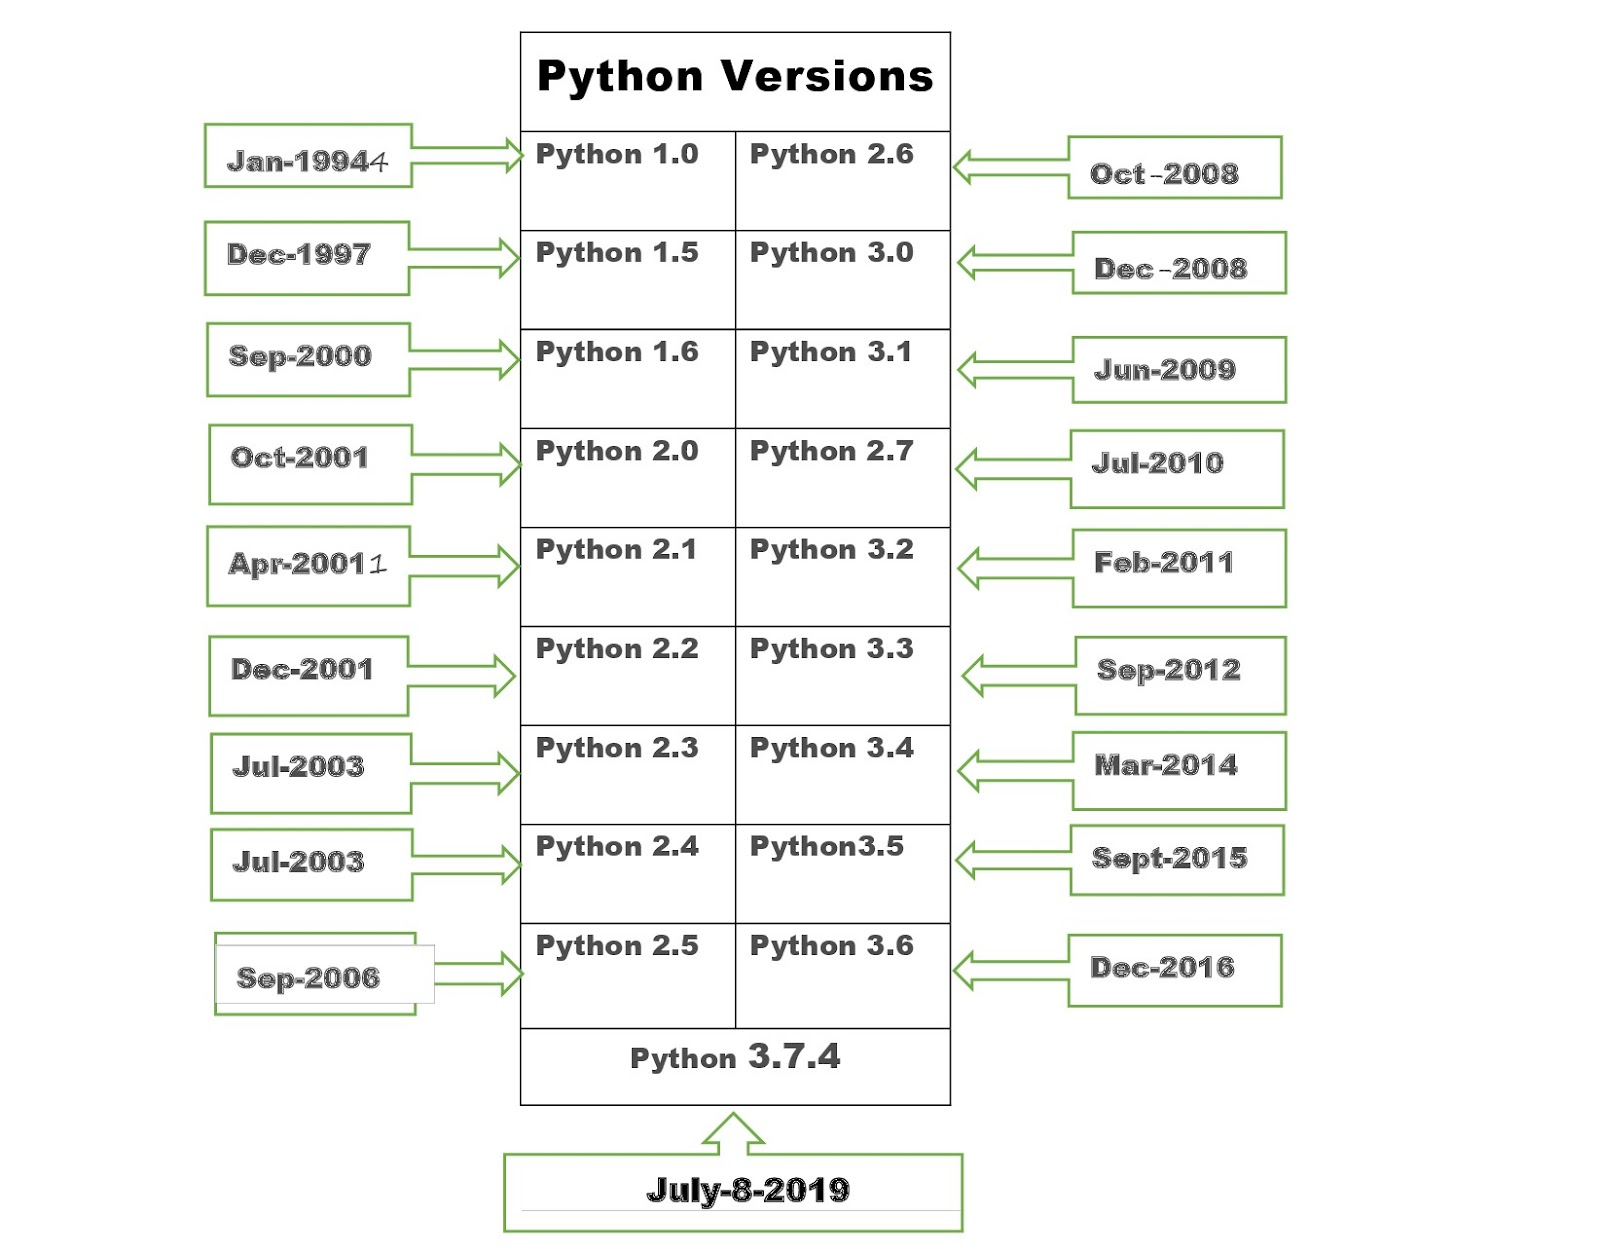 Versions of python language